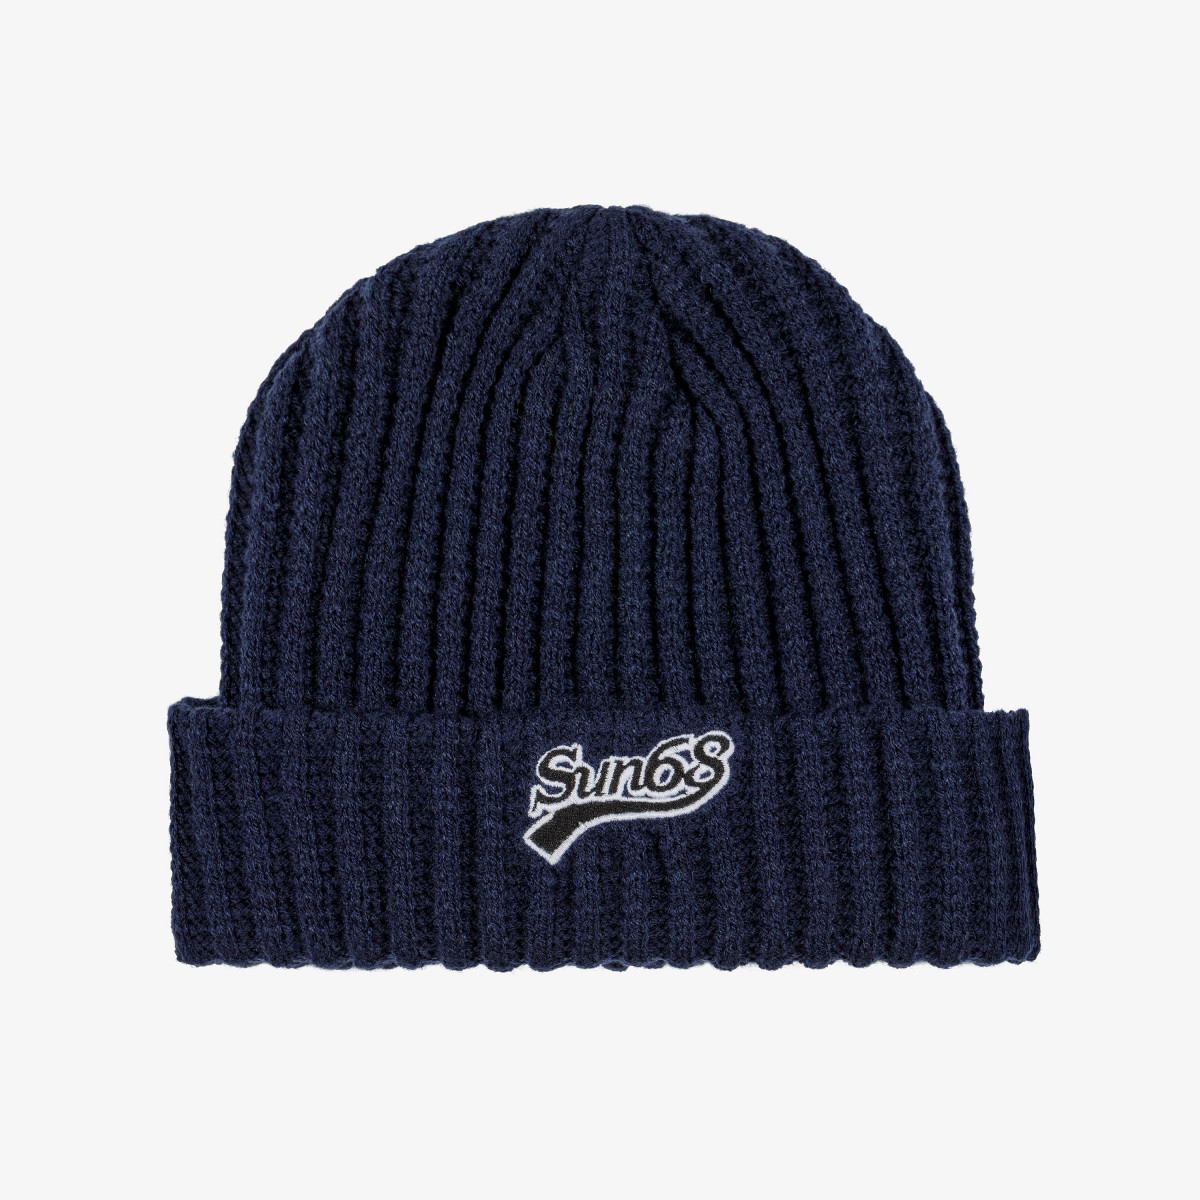 CAP THICK KNIT NAVY BLUE